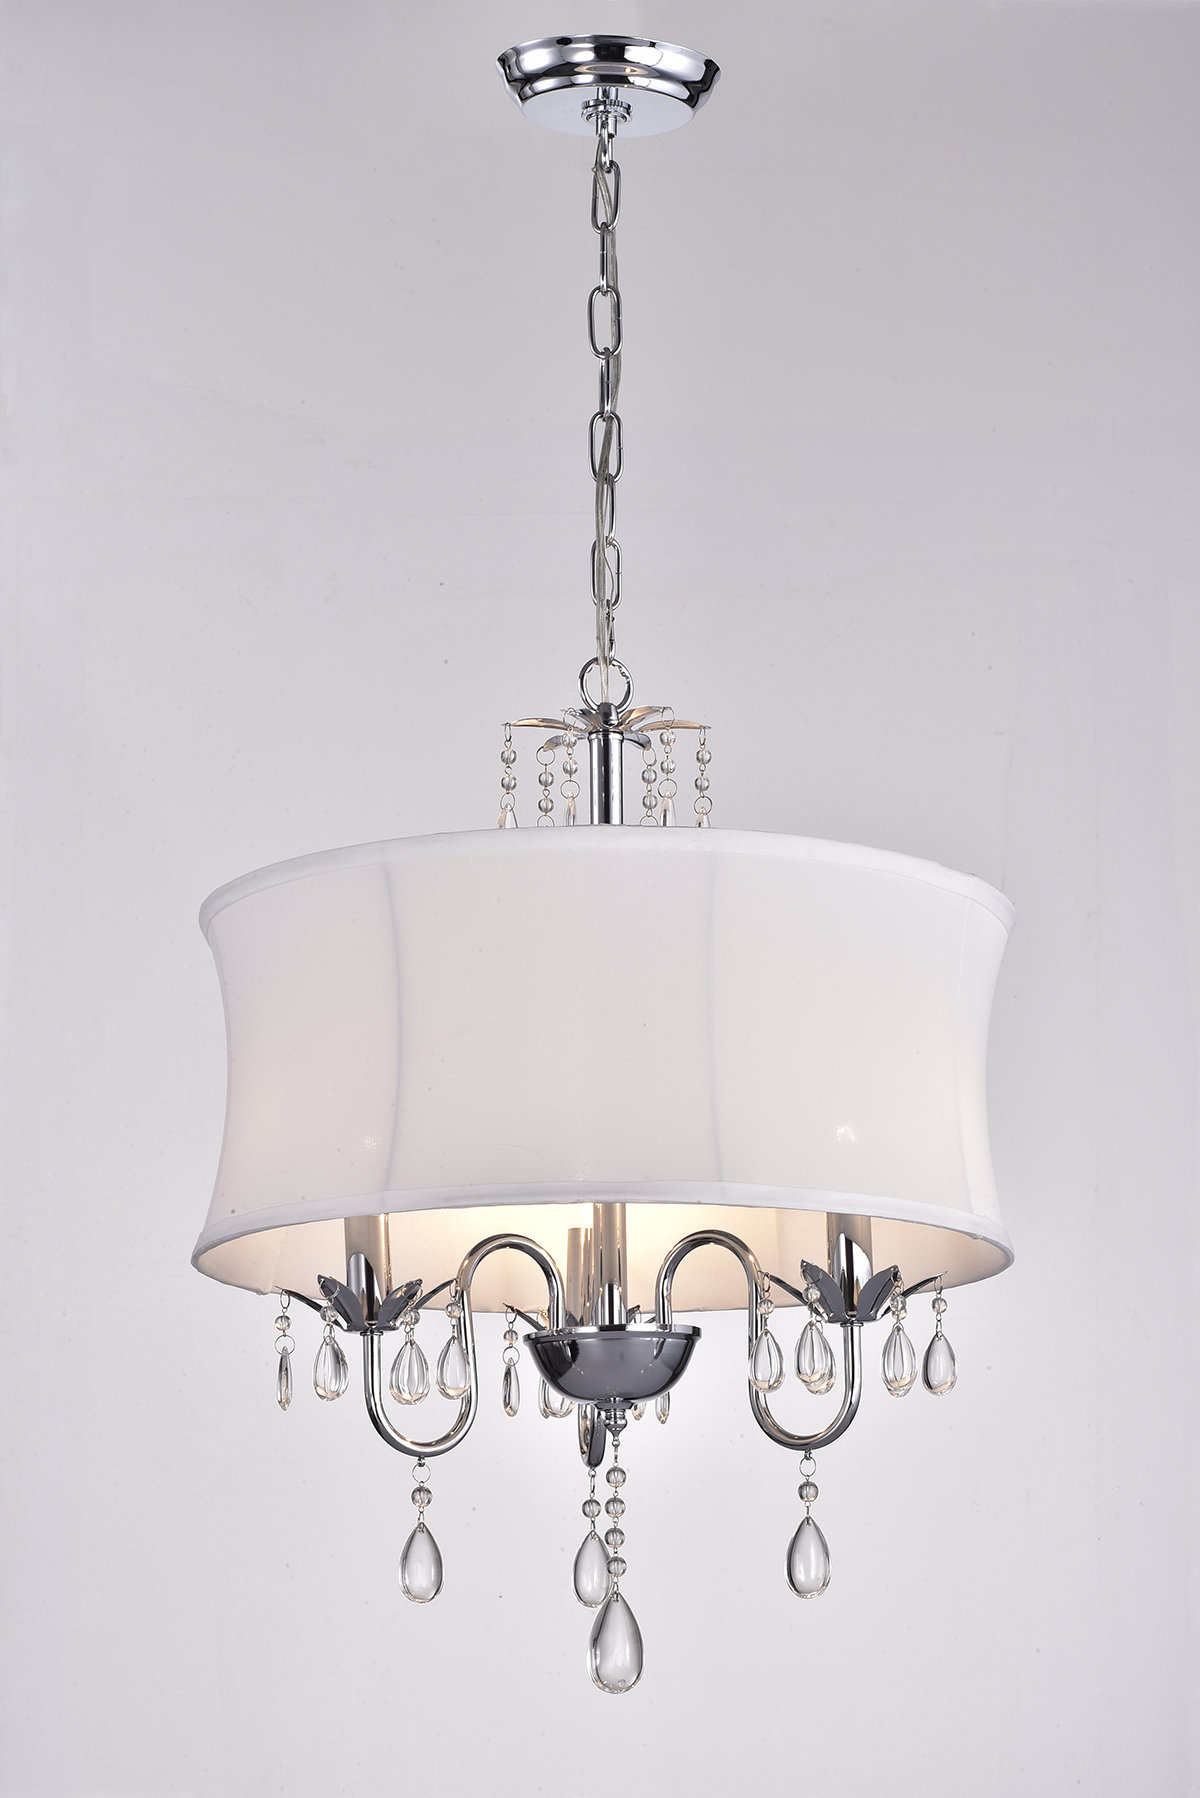 Widely Used Buster 5 Light Drum Chandeliers Within Leandra 3 Light Drum Chandelier (Gallery 8 of 20)